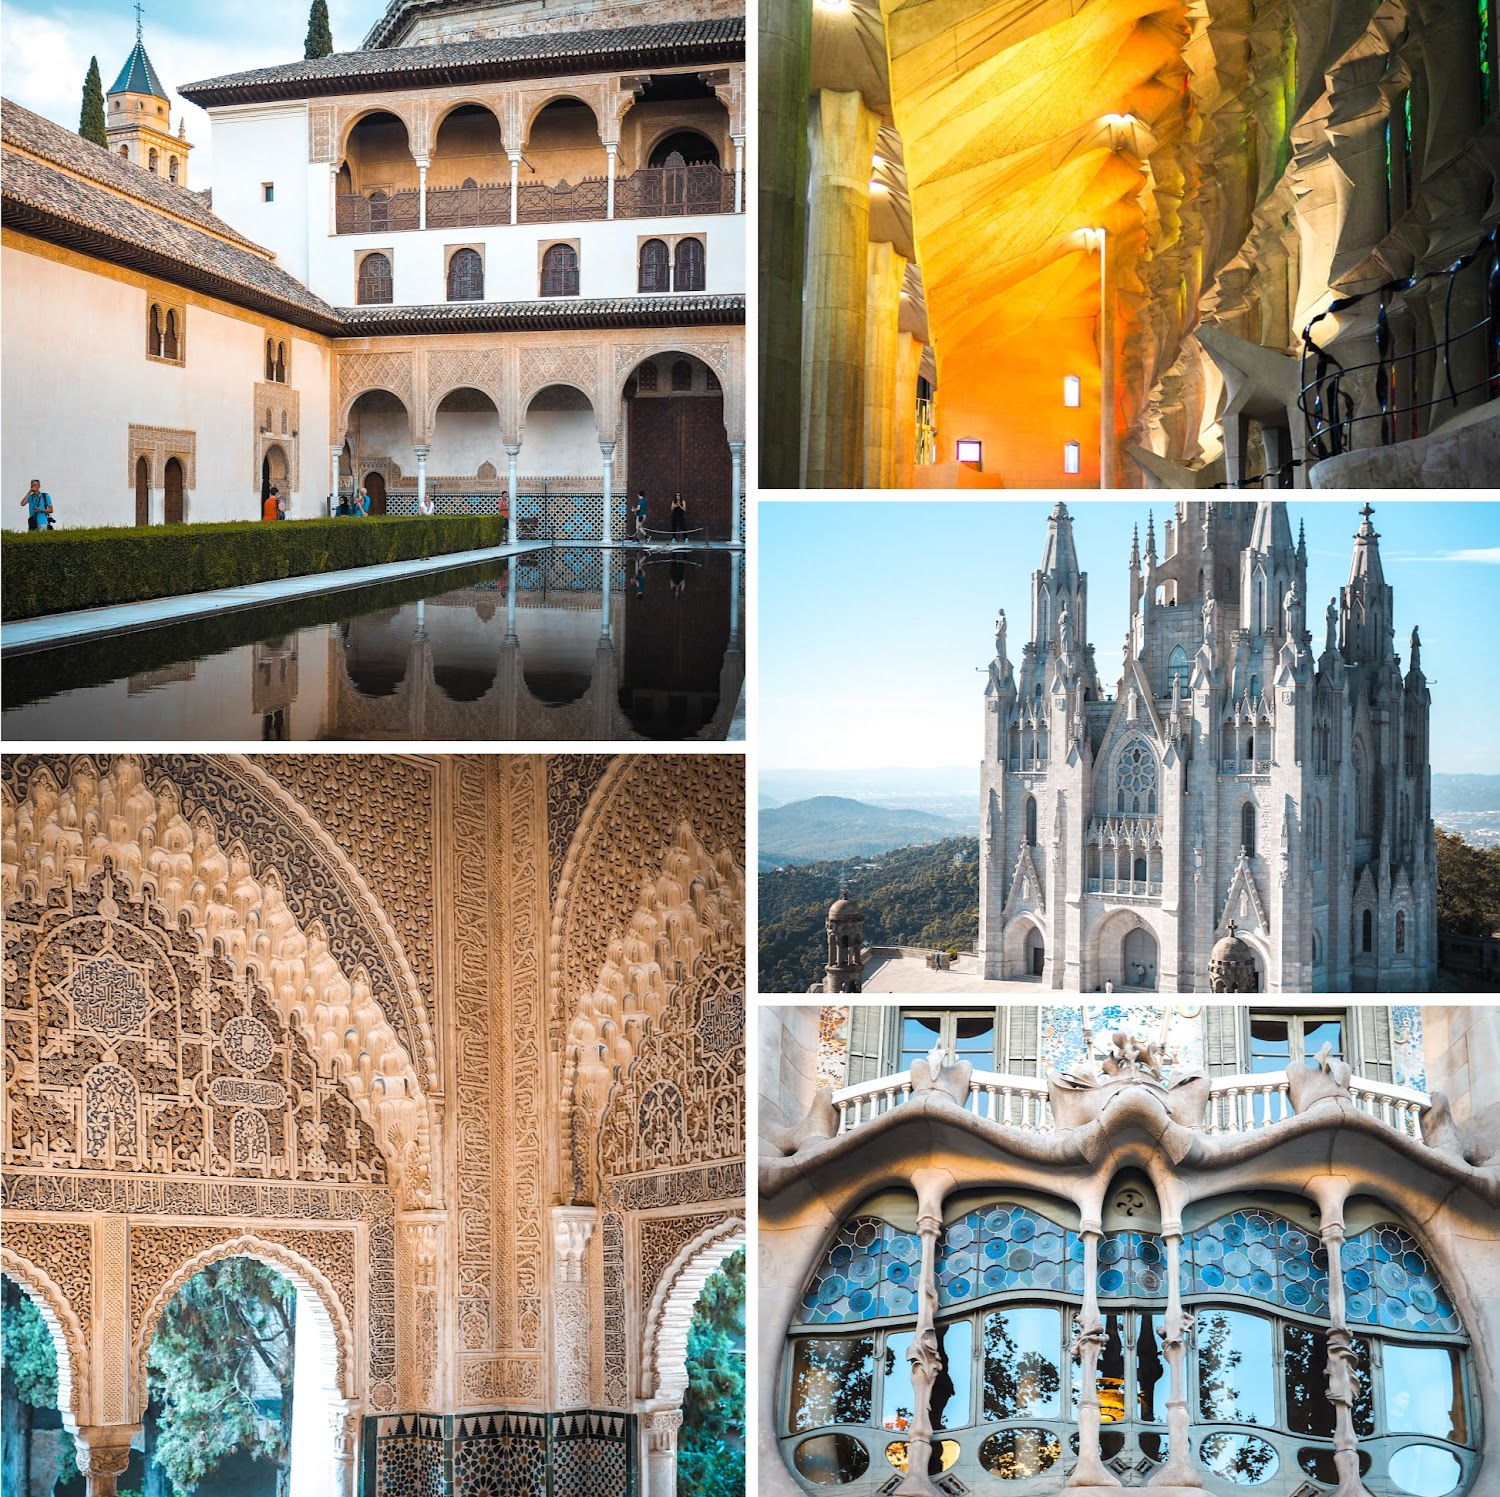 Spain highlights: Alhambra palace, la familia sangrada, Gaudi